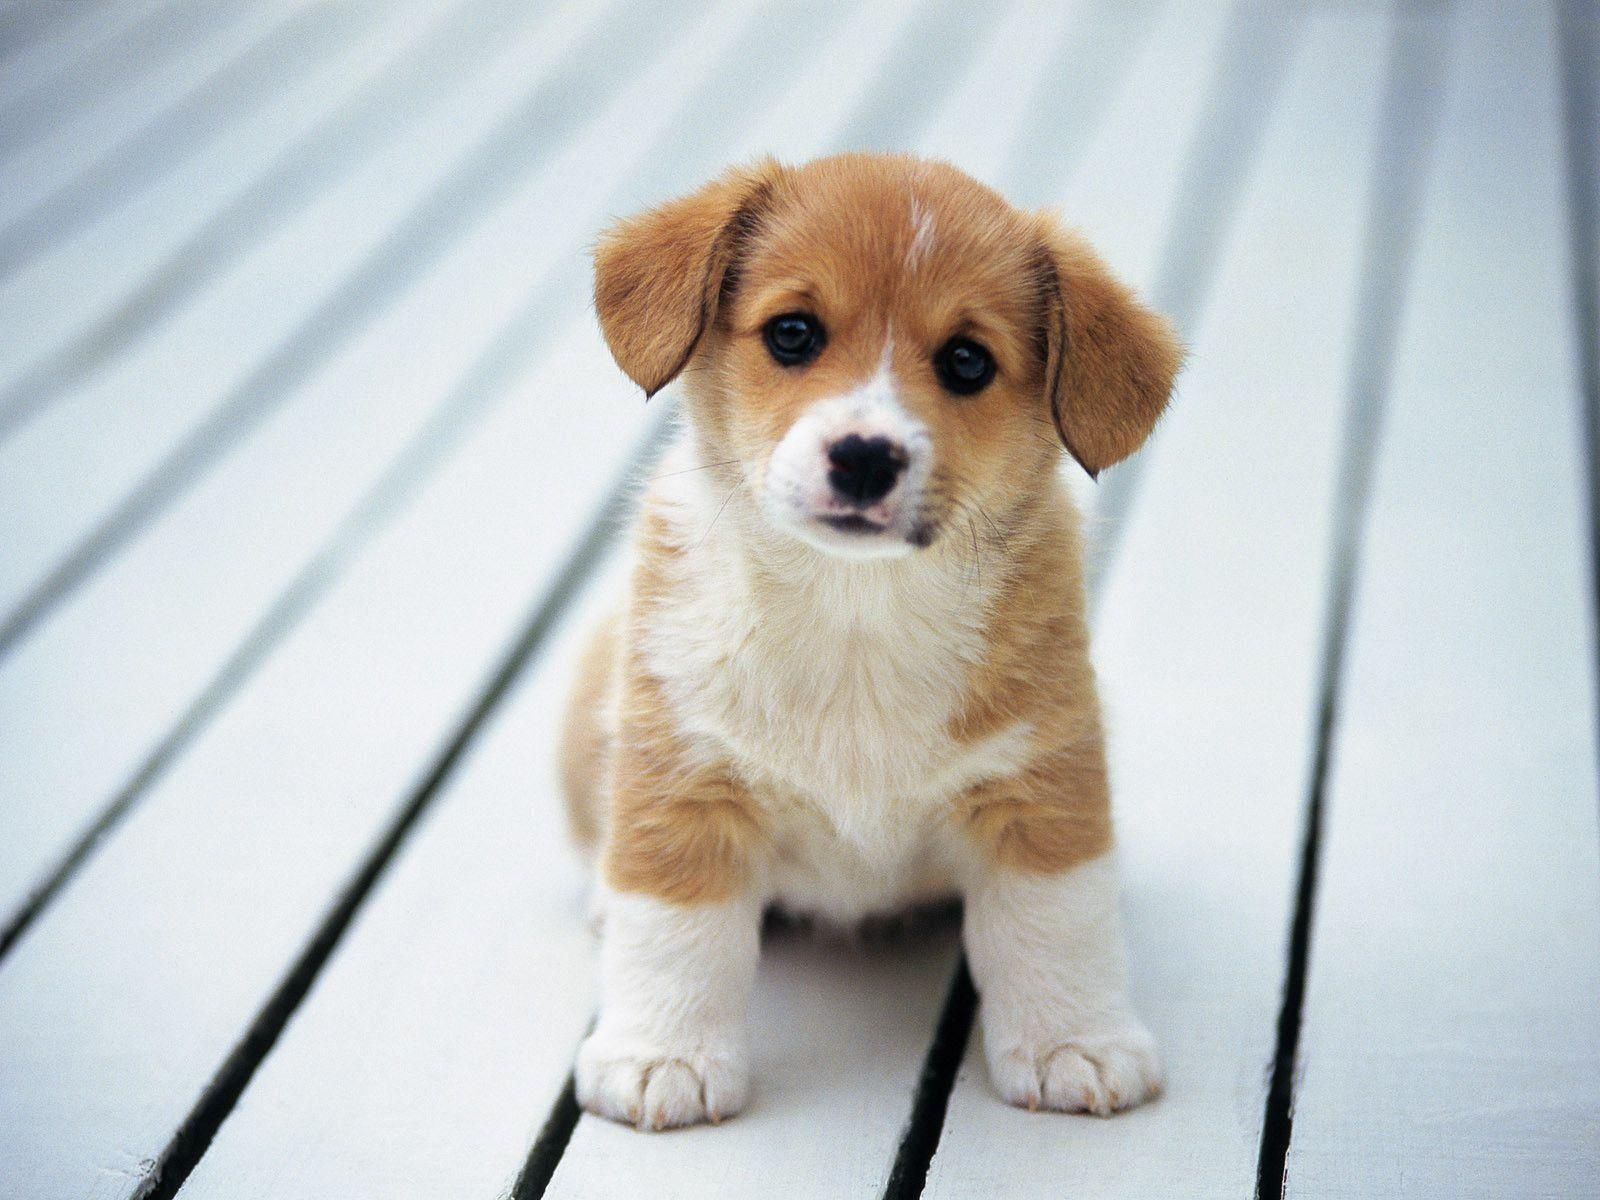 Puppies Free Hd Wallpapers And Backgrounds Download 29 Puppies Free Hd Wallpapers And Backgrounds Download 29 Http Puppies Cute Baby Animals Cute Animals